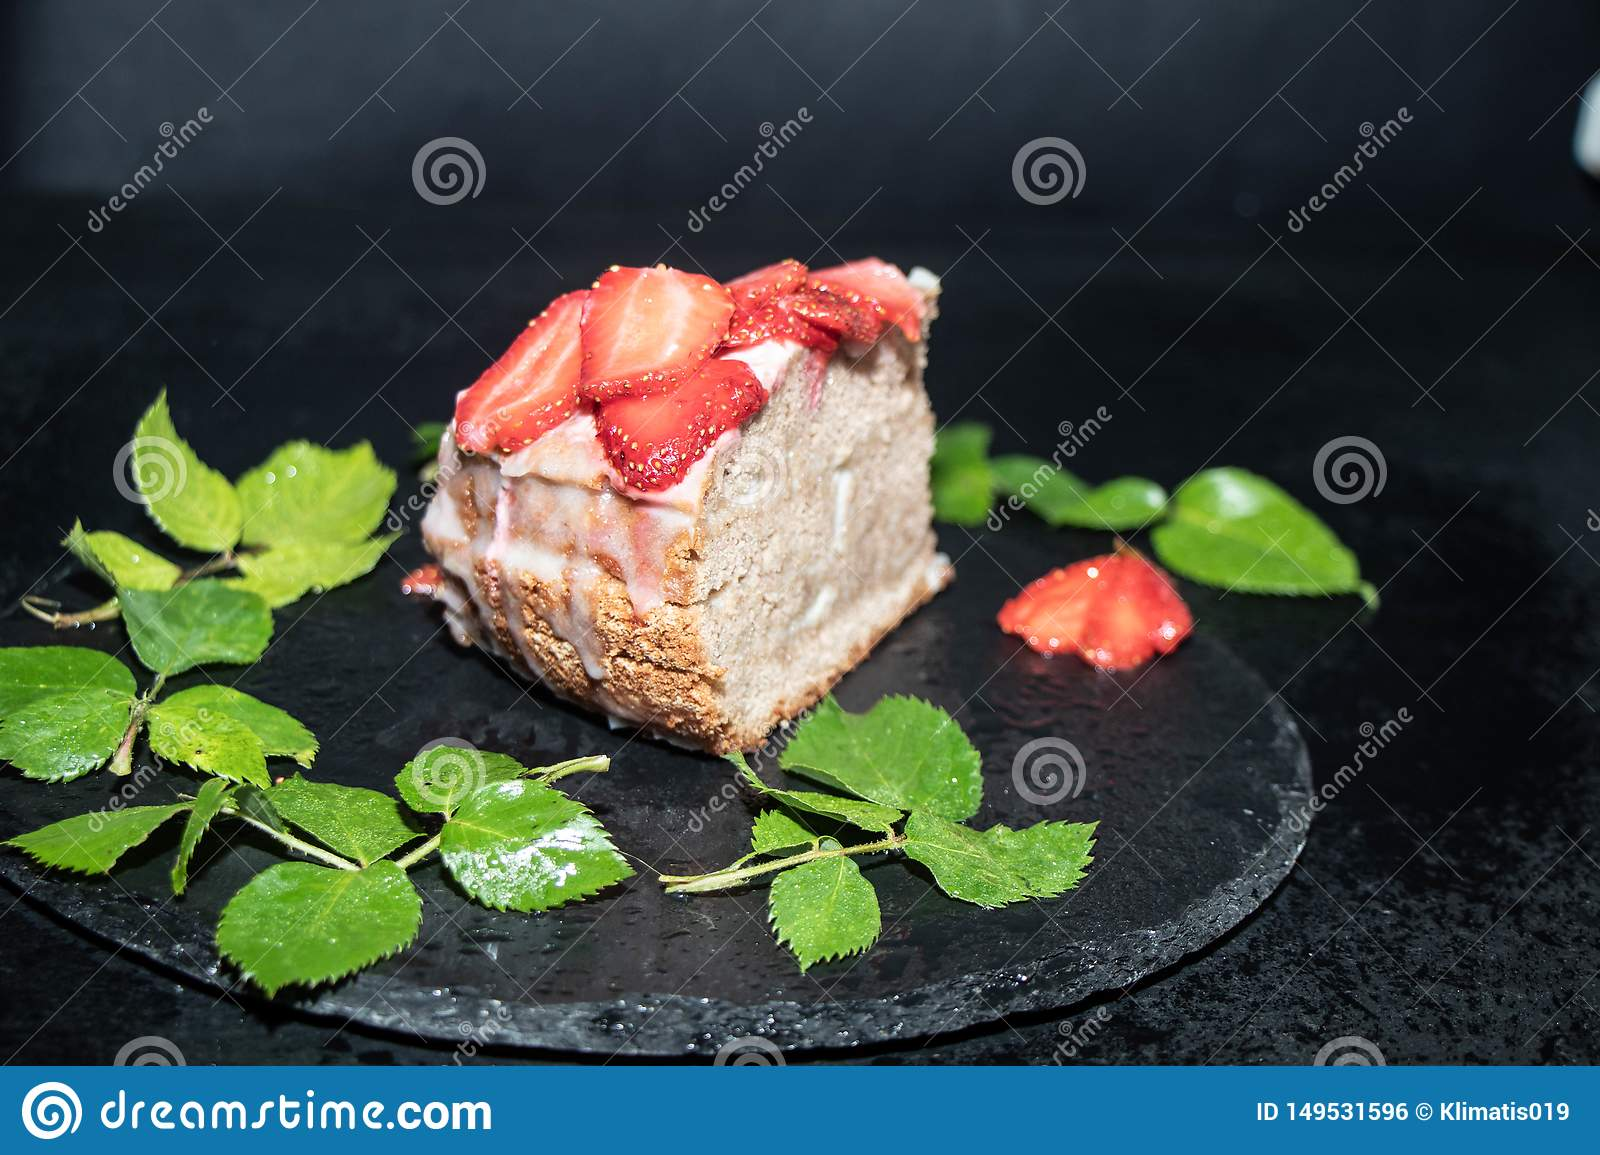 Biscuit cake with sour cream decorated with strawberries, fresh berry on a tray, with blue lights in the background,